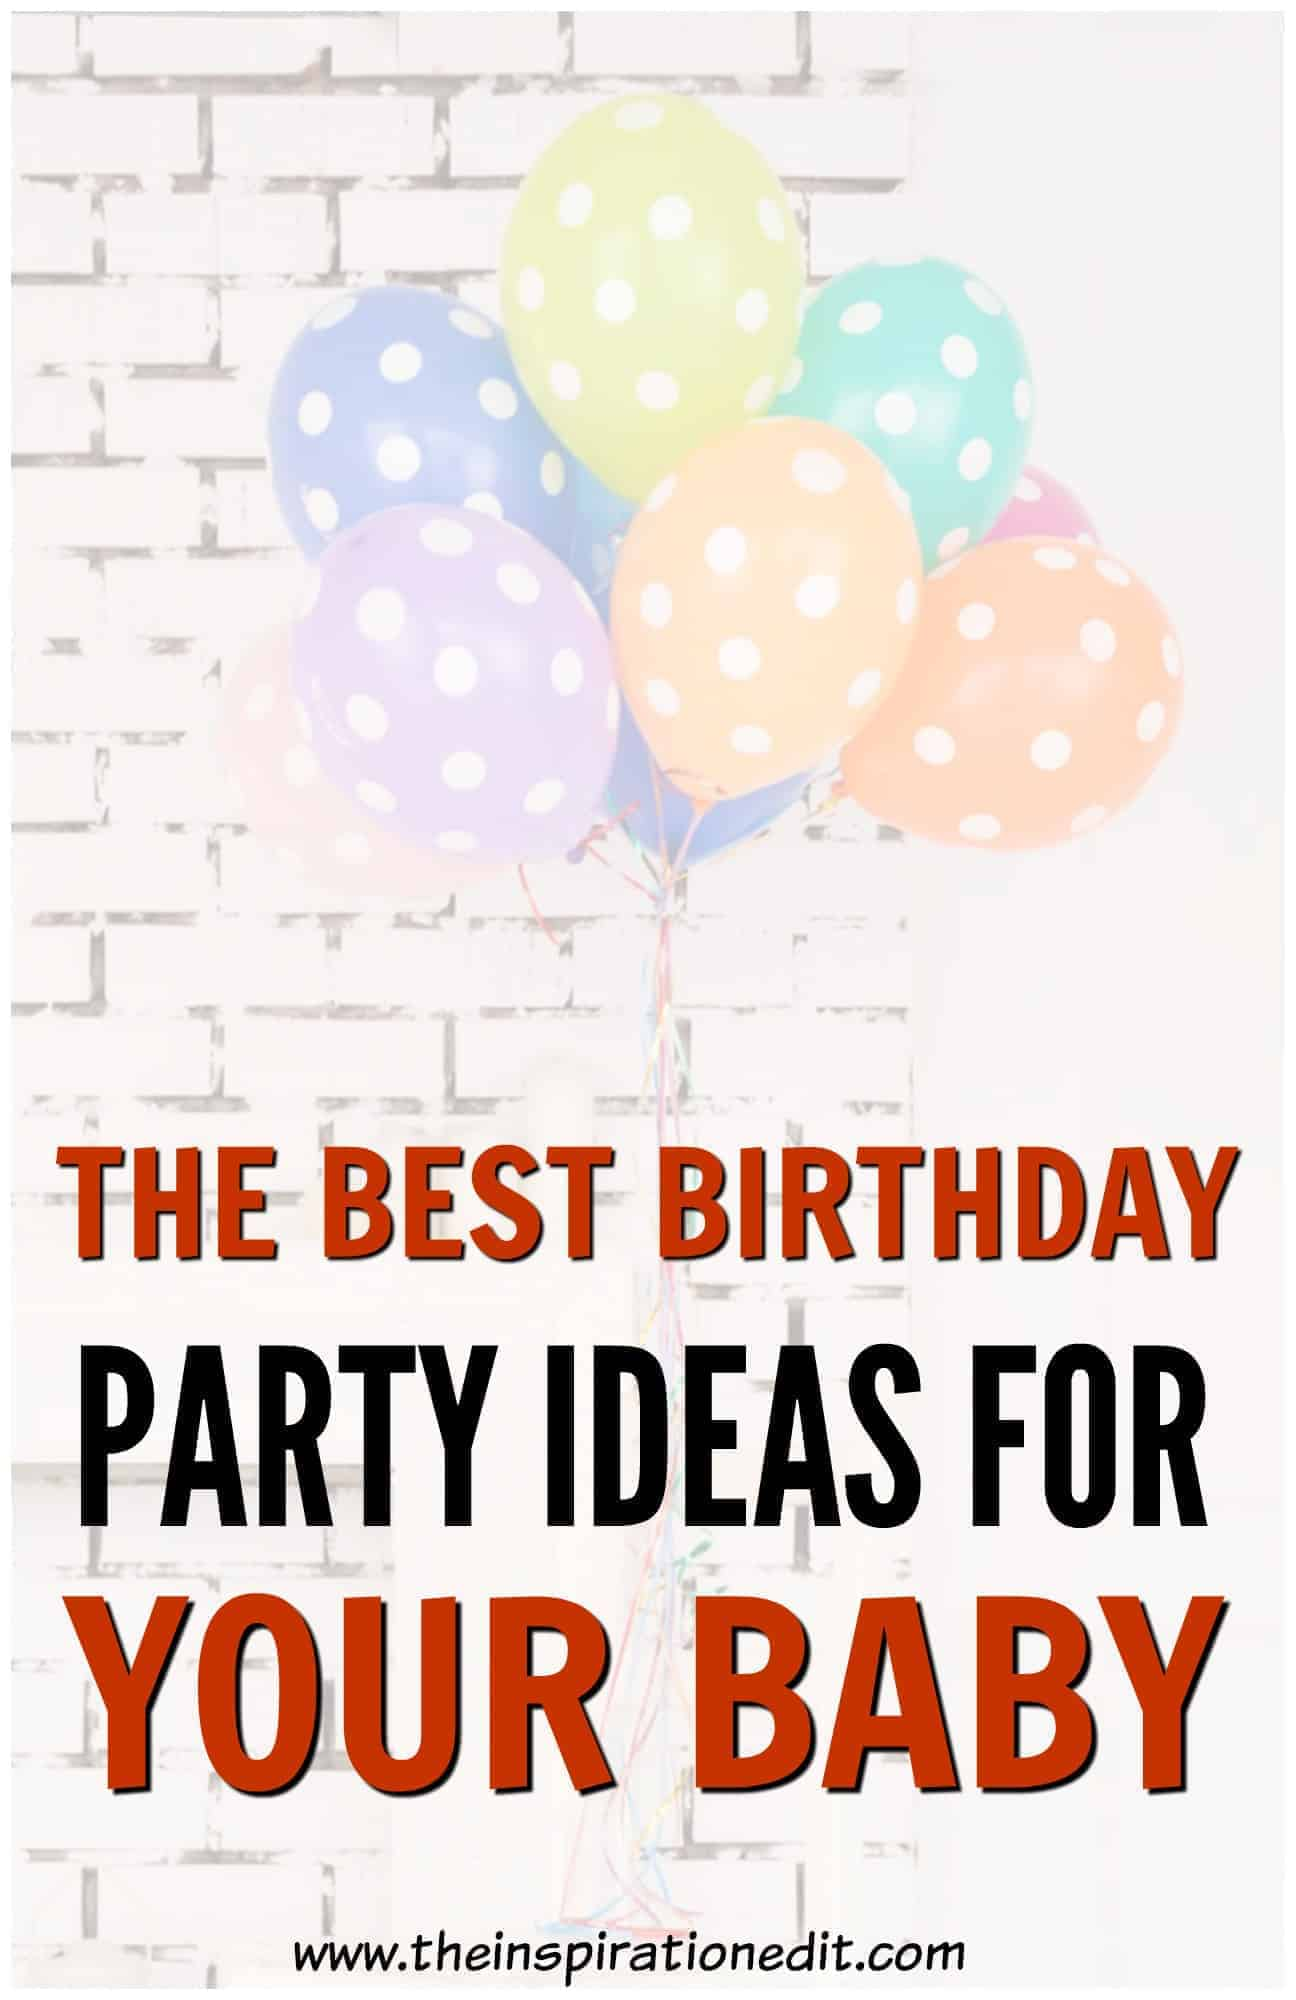 the best birthday party ideas for your baby